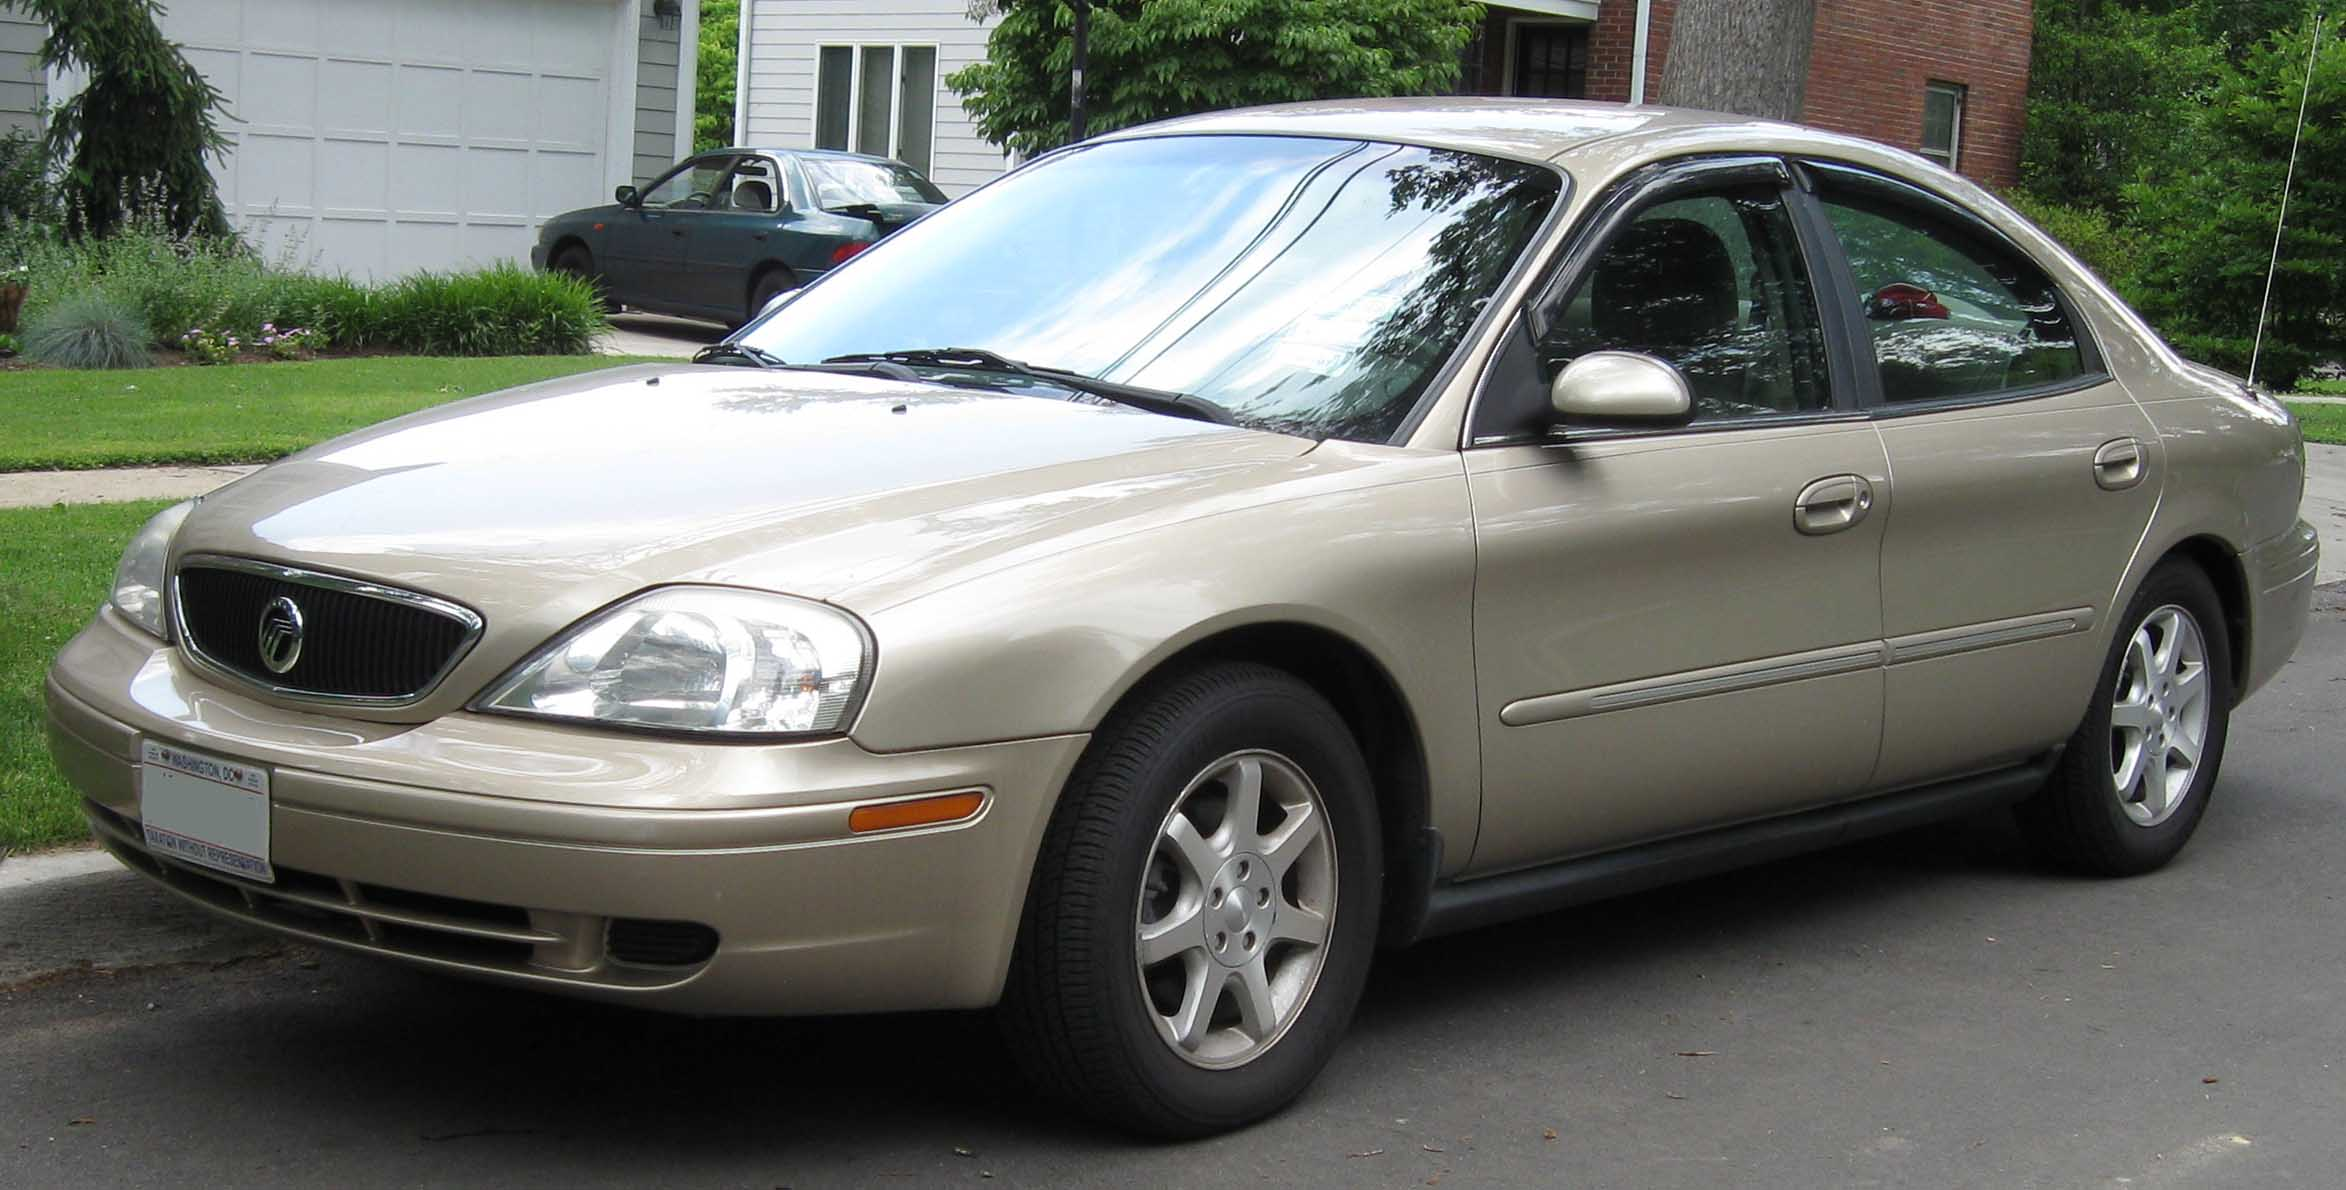 2005 Mercury Sable Information And Photos Momentcar Wiring Diagram 3